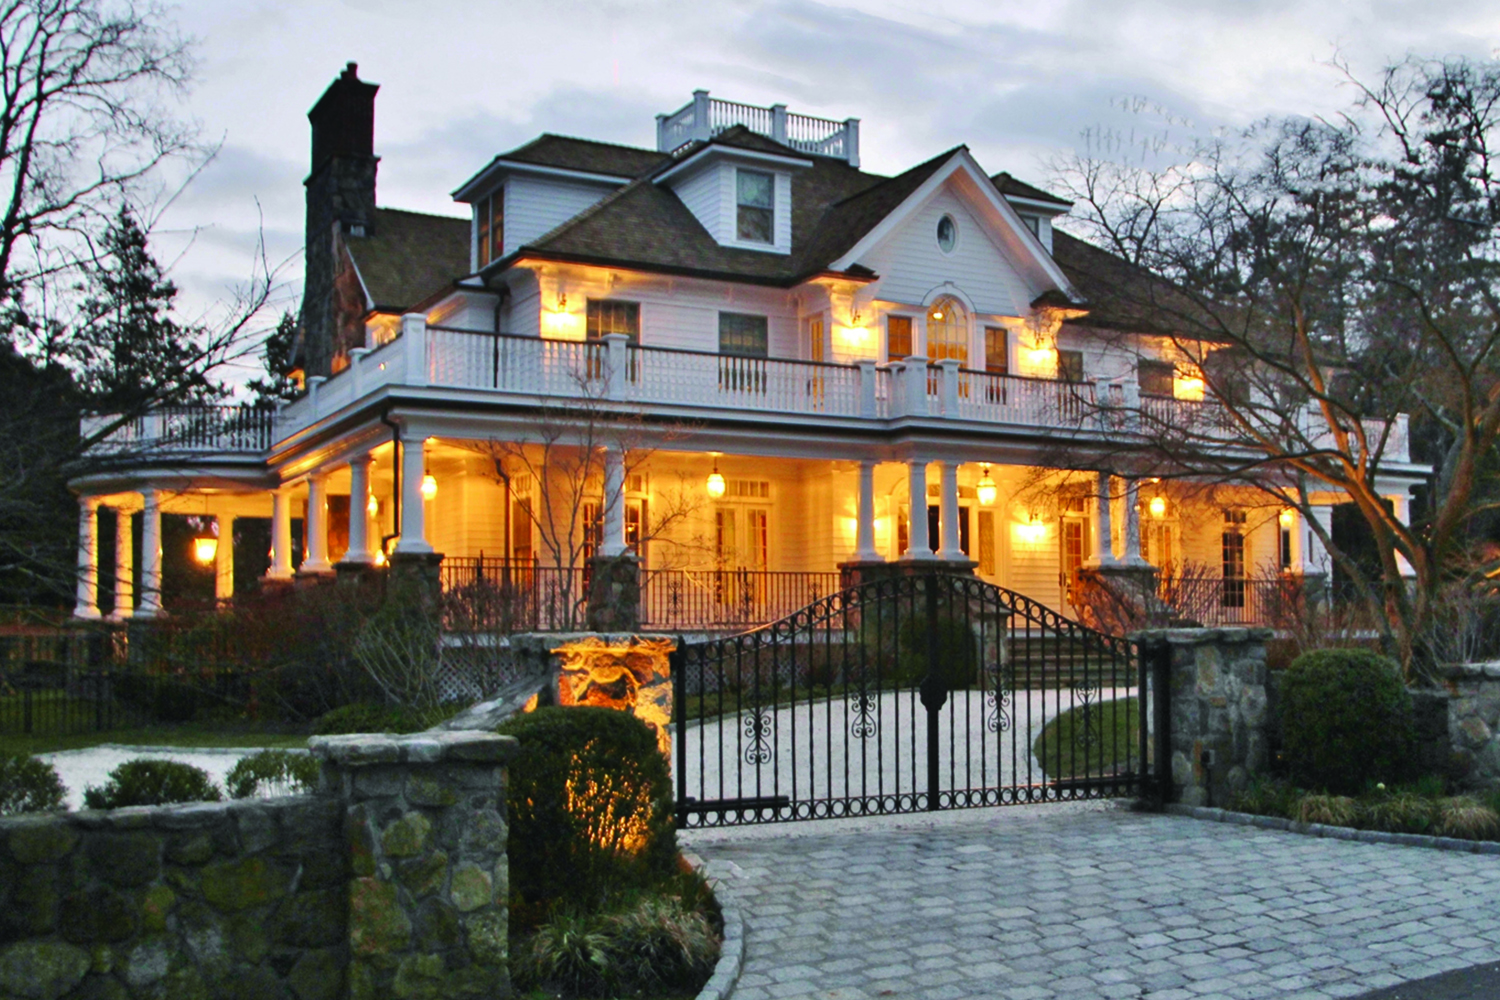 Chic-colonial-belgian-block-driveway-old-greenwich-ct-exterior-w.jpg